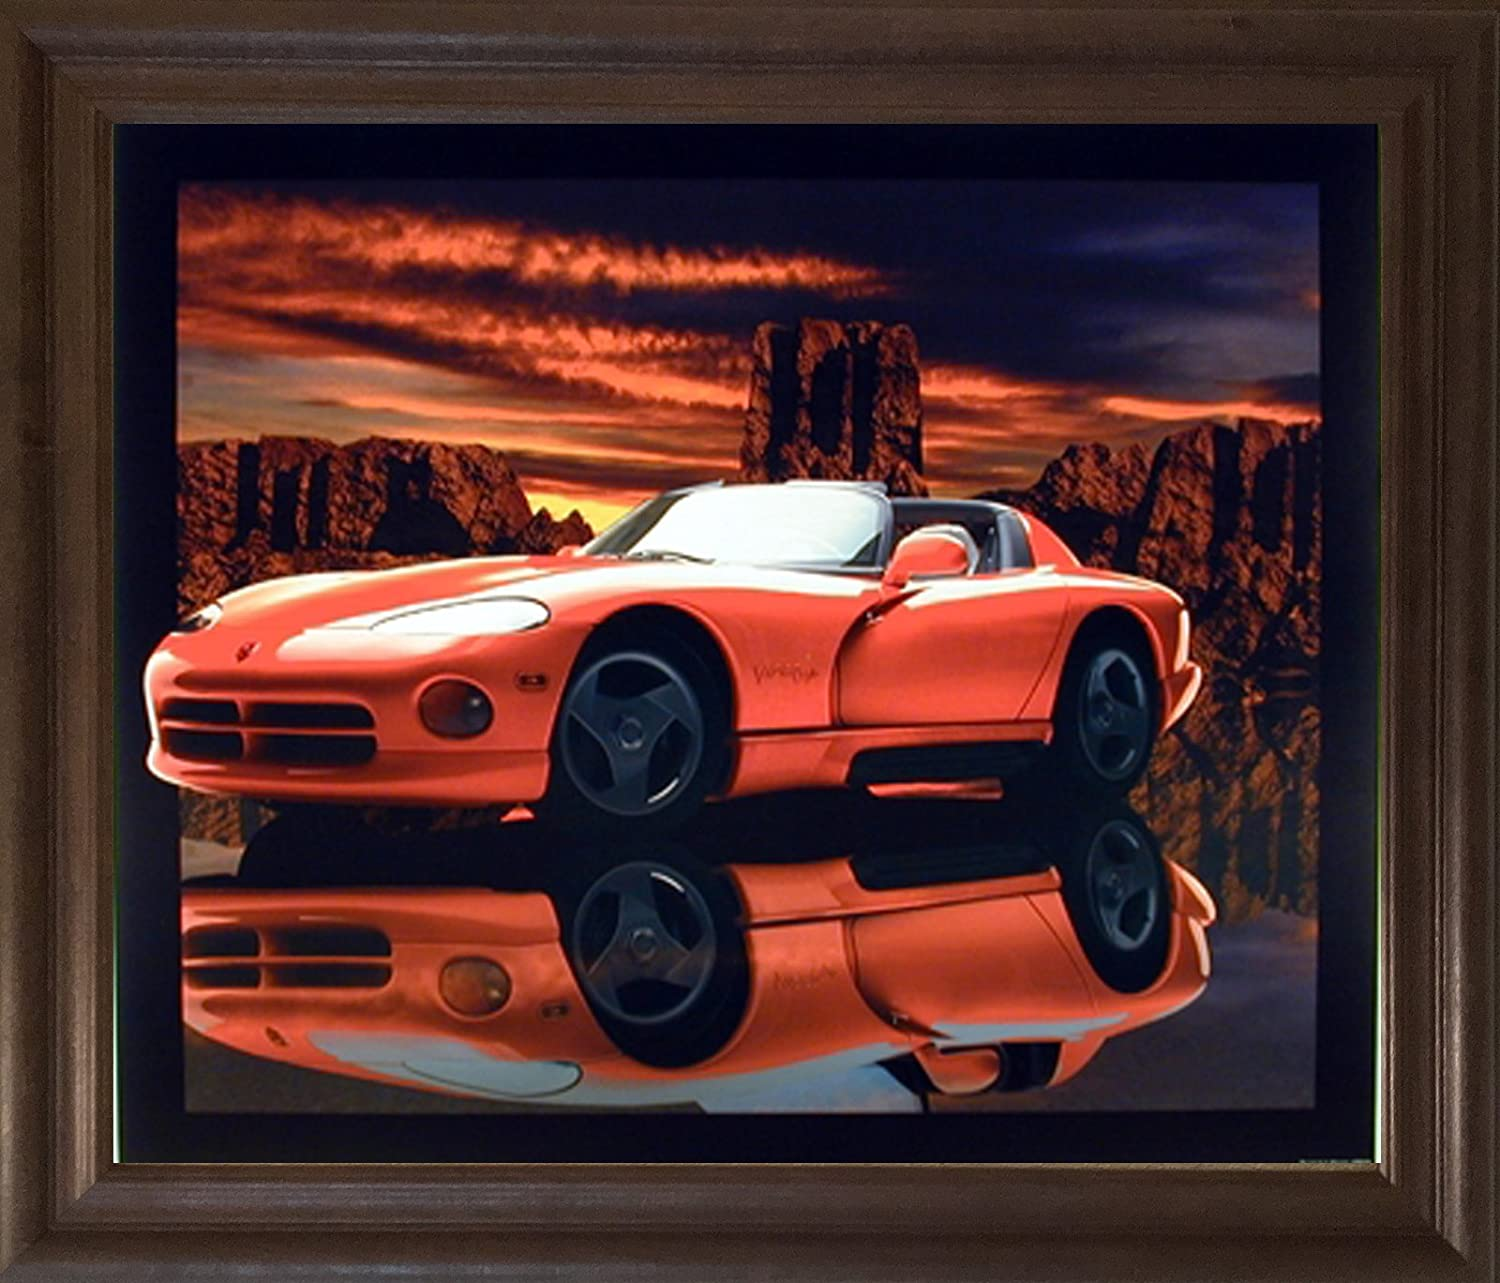 Amazon Com Impact Posters Gallery Classic Sports Car Art Print Framed Wall Decor Red Hot Dodge Viper Lithograph Brown Rust Picture 19x23 Home Kitchen